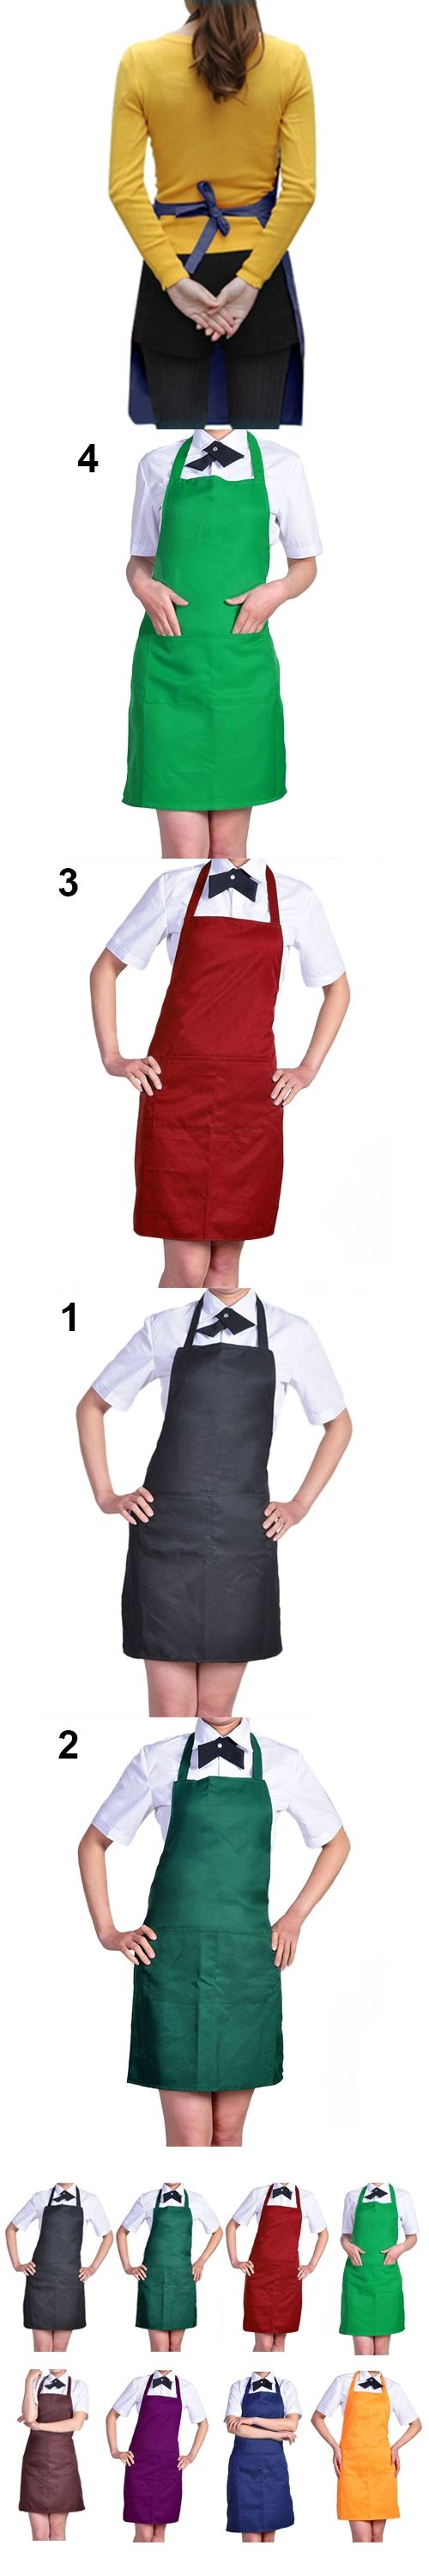 Women's Fashion Easy to Clean Apron with Front Pocket for Chefs Butchers Retail/Wholesale  8T7U